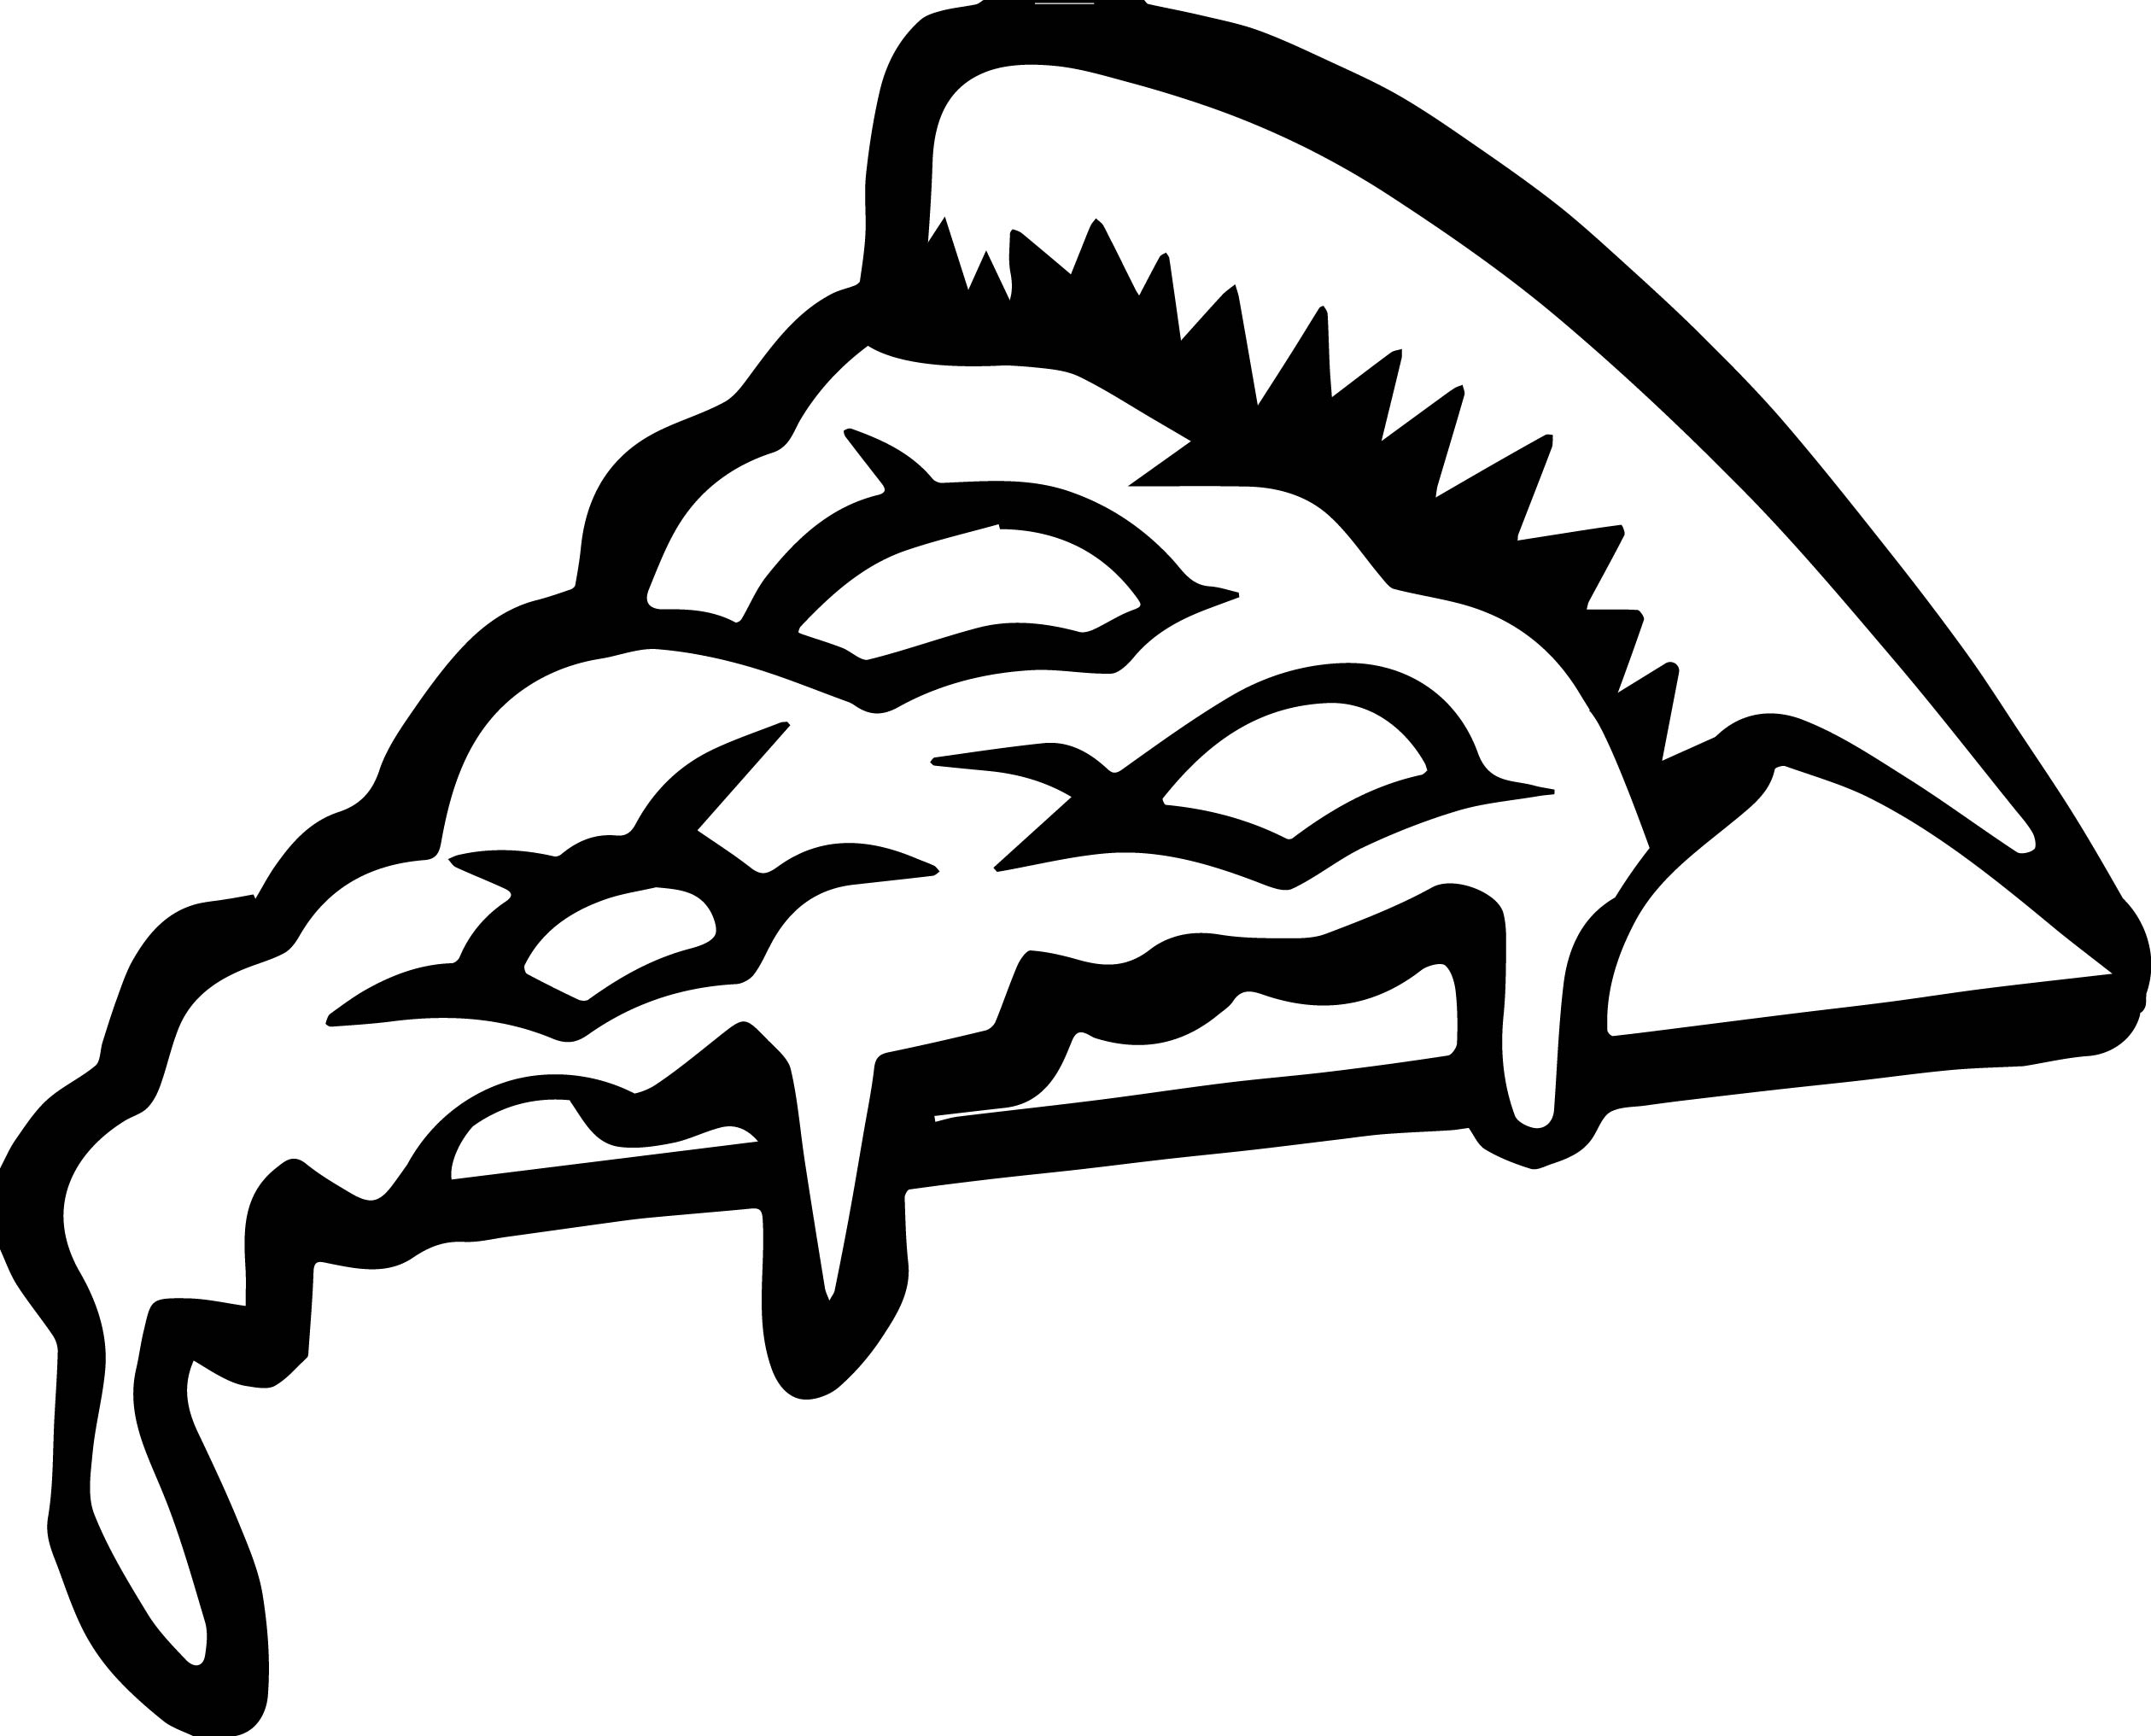 Whole Pizza Half Pizza Pizza Slice Dripping Cheese Coloring Page